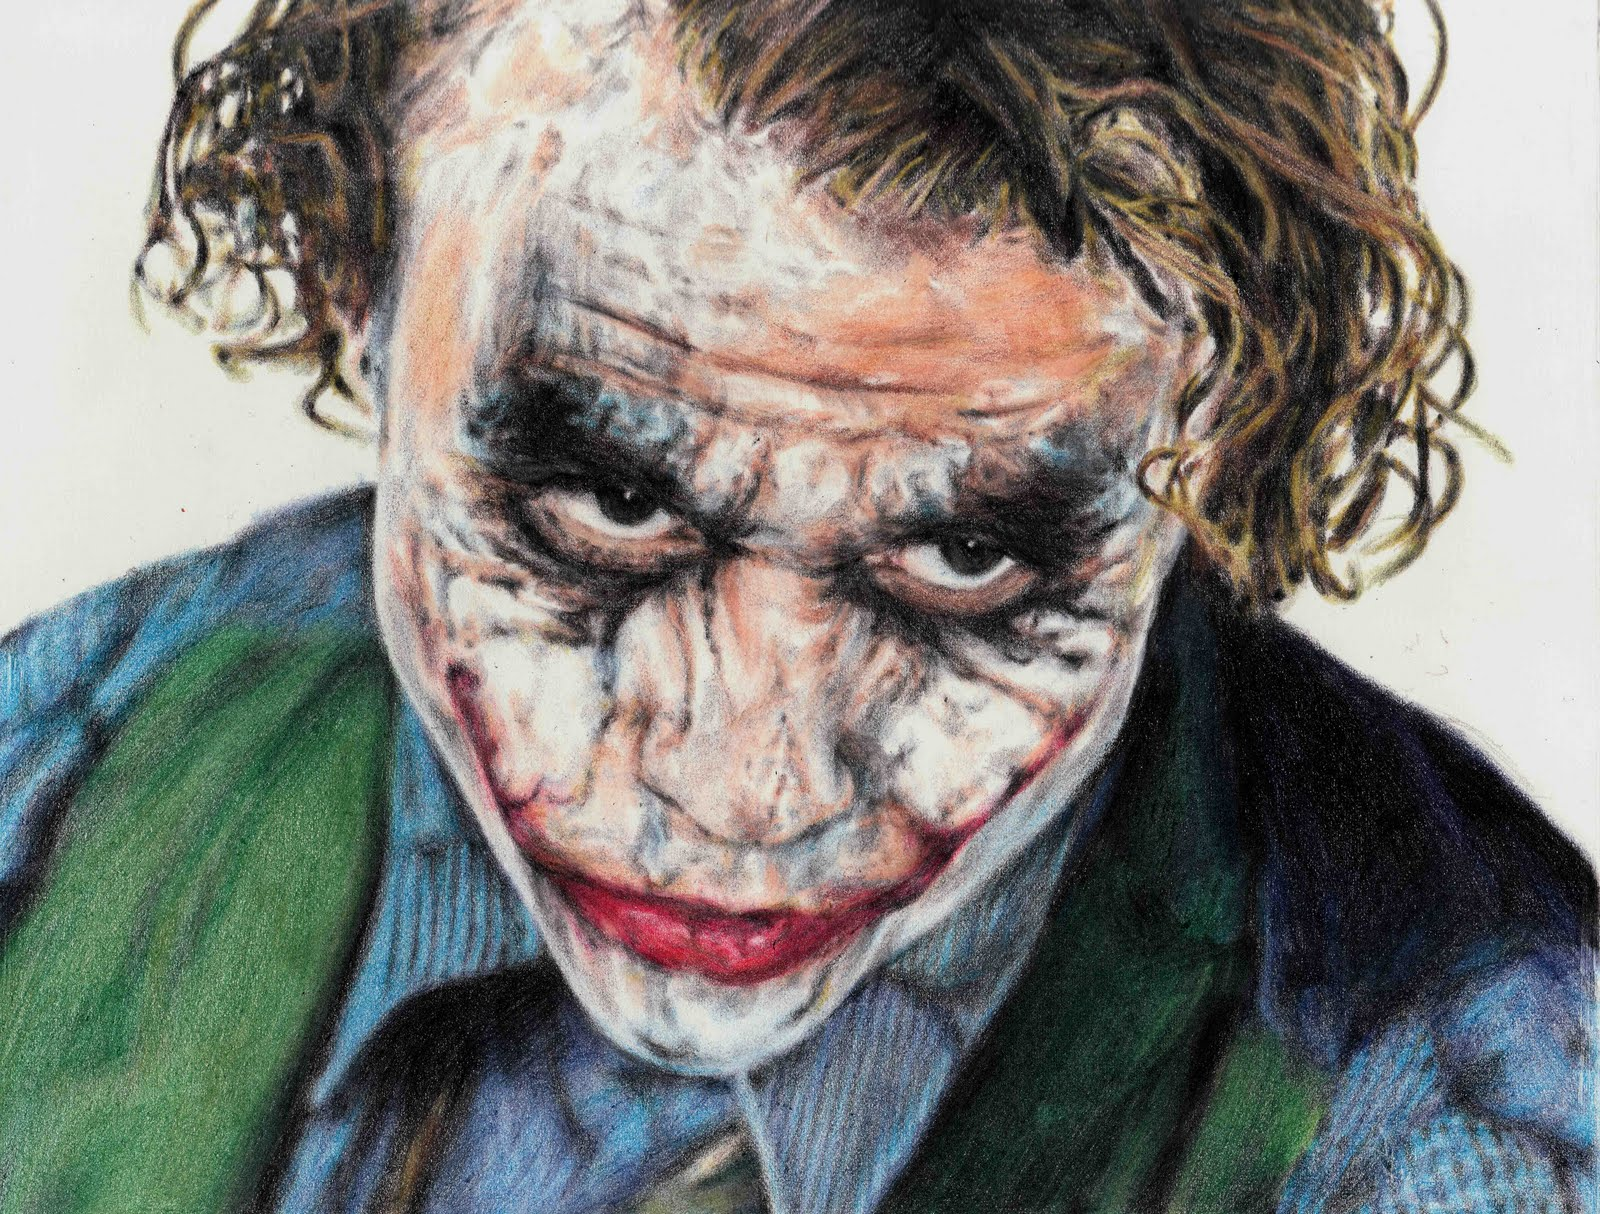 http://2.bp.blogspot.com/_mz_edllRzQ4/S-6NYviLggI/AAAAAAAAqno/pC82OsfcuOI/s1600/Heath_Ledger__The_Joker_by_mauricio17.jpg